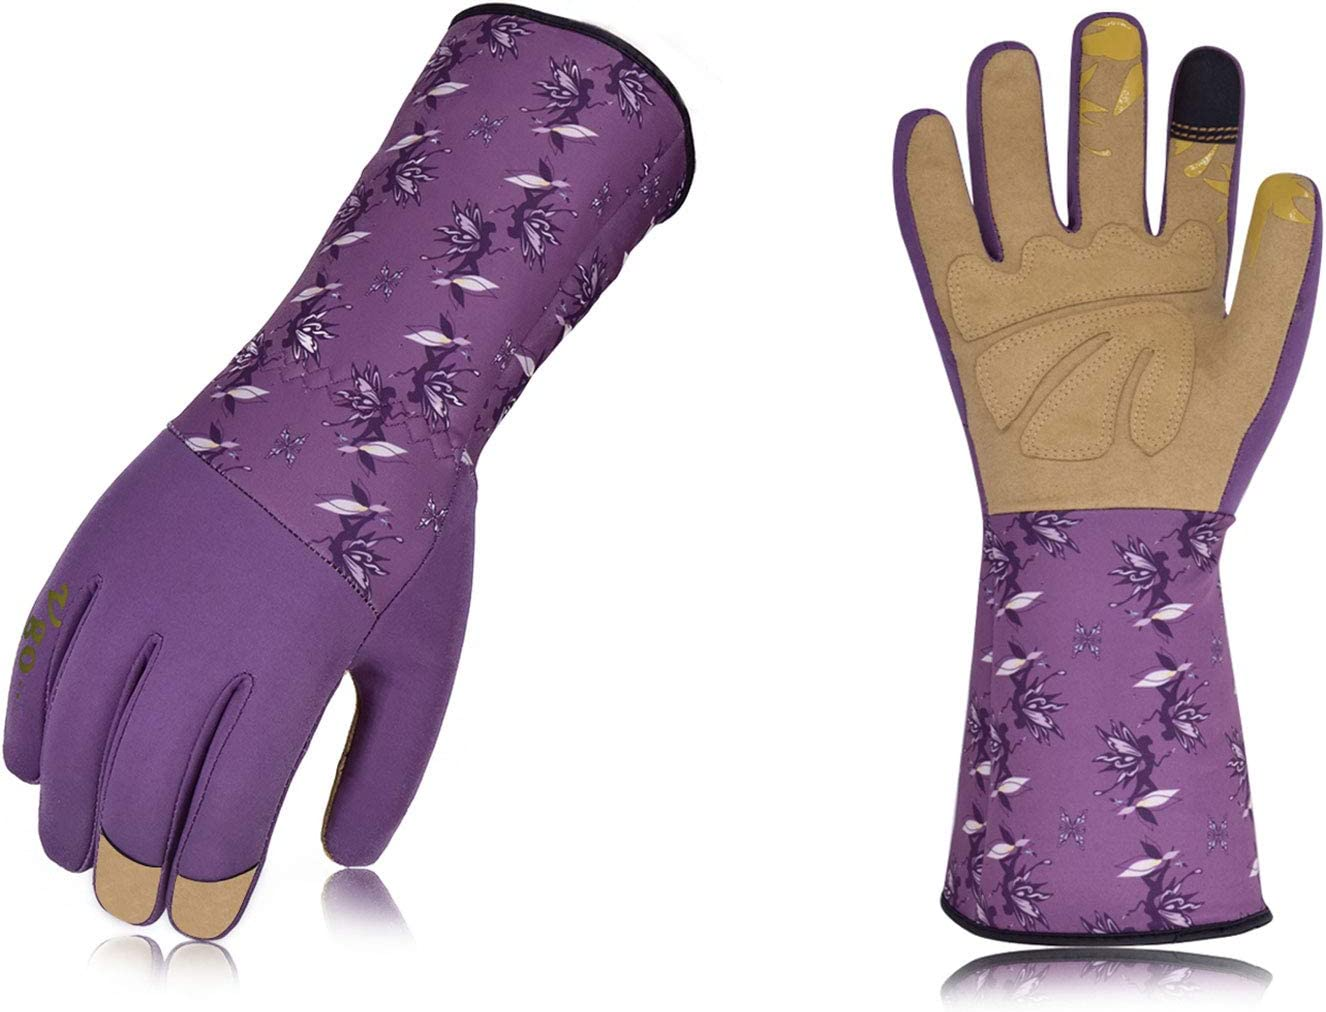 Vgo Ladies' Synthetic Leather Long Cuff Rose Garden Gloves (Size L, Purple, SL7453)